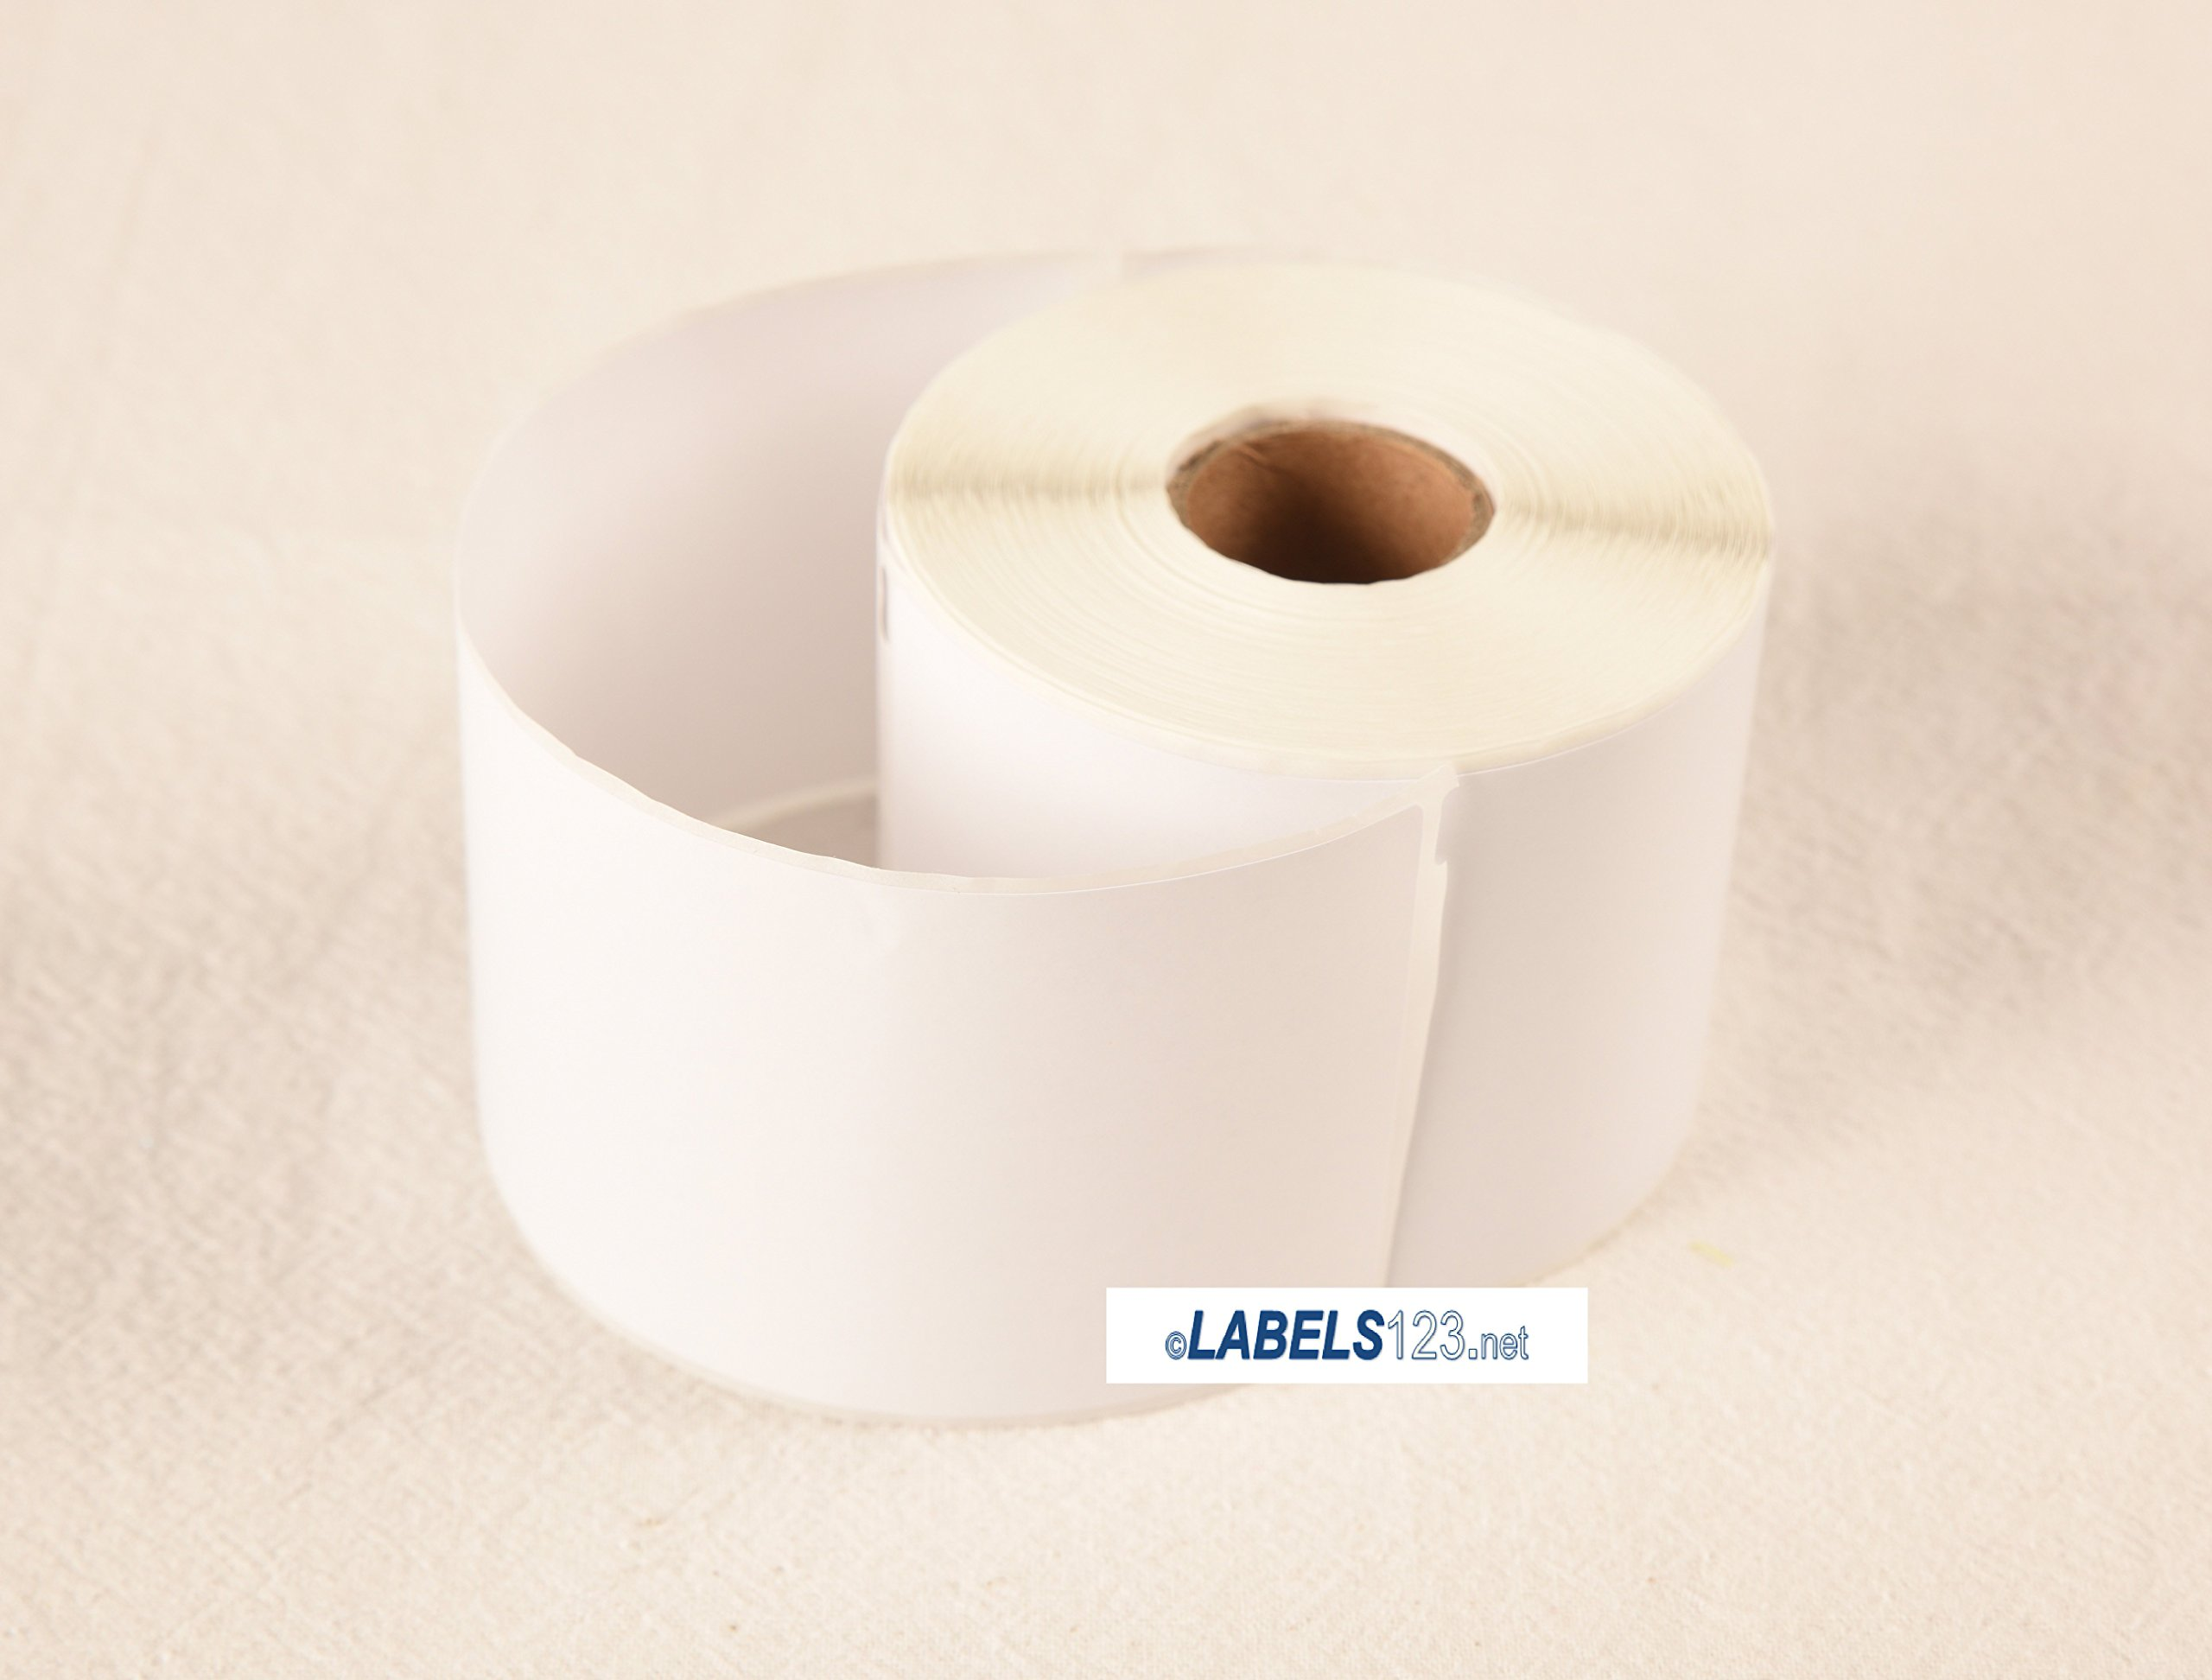 Dymo Compatible 99019 Shipping Internet Postage Labels Thermal (2-5/16'' X 7-1/2'') - (20 Rolls; 150 Labels Per Roll) by Labels123